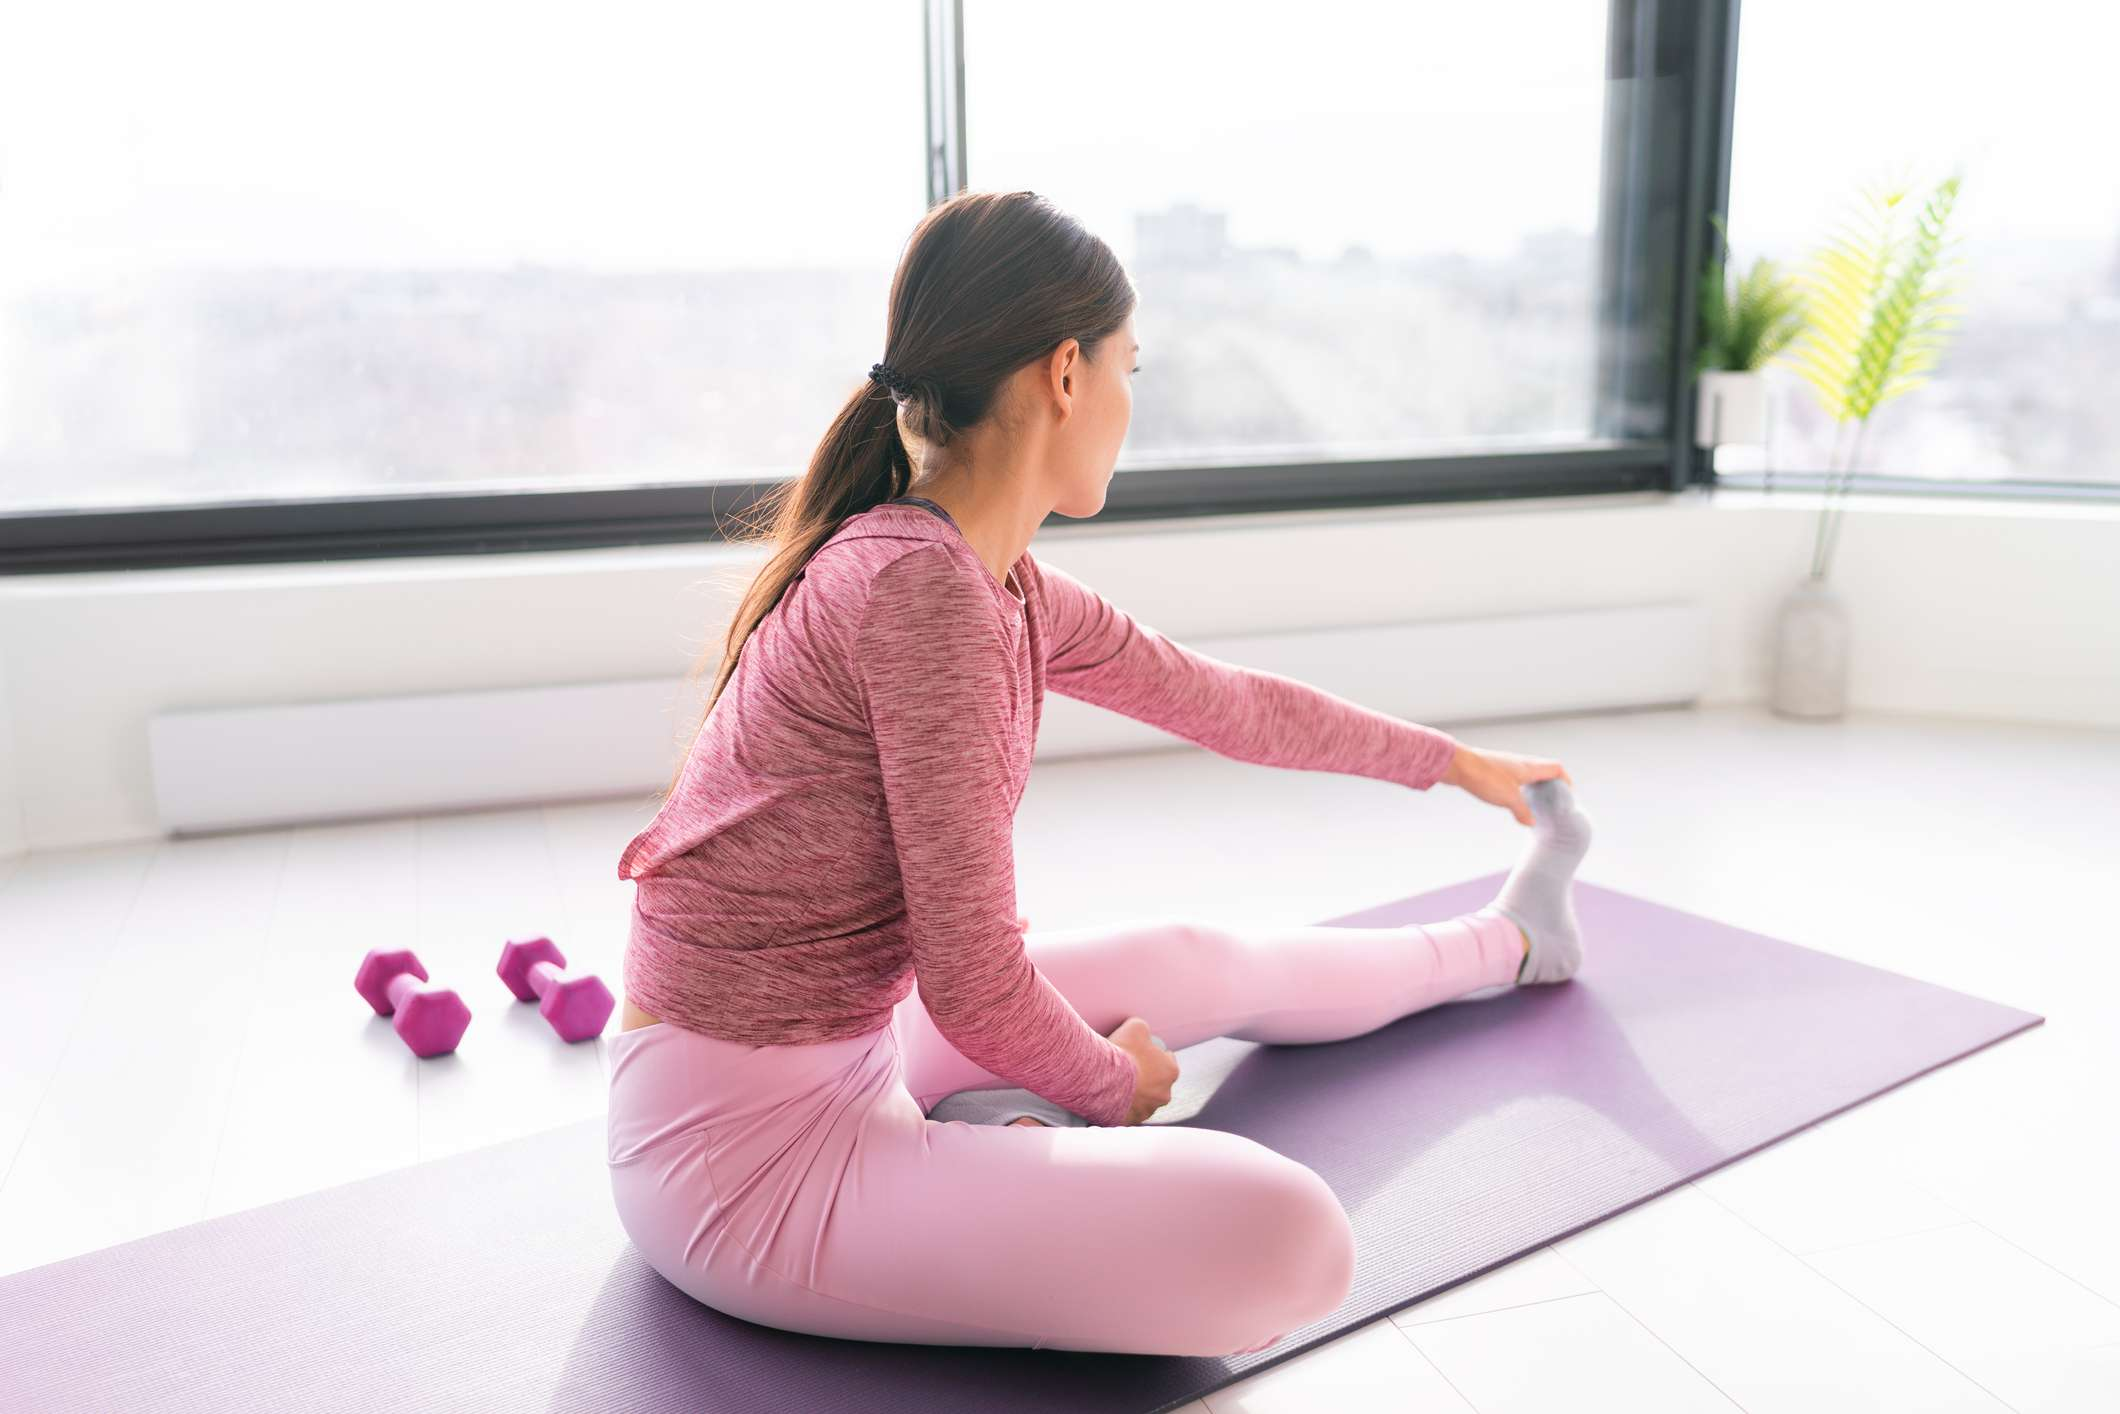 Exercise fitness staying home workout woman exercising stretching leg muscles before yoga training. Fit girl working out in morning sunlight in living room of apartment house